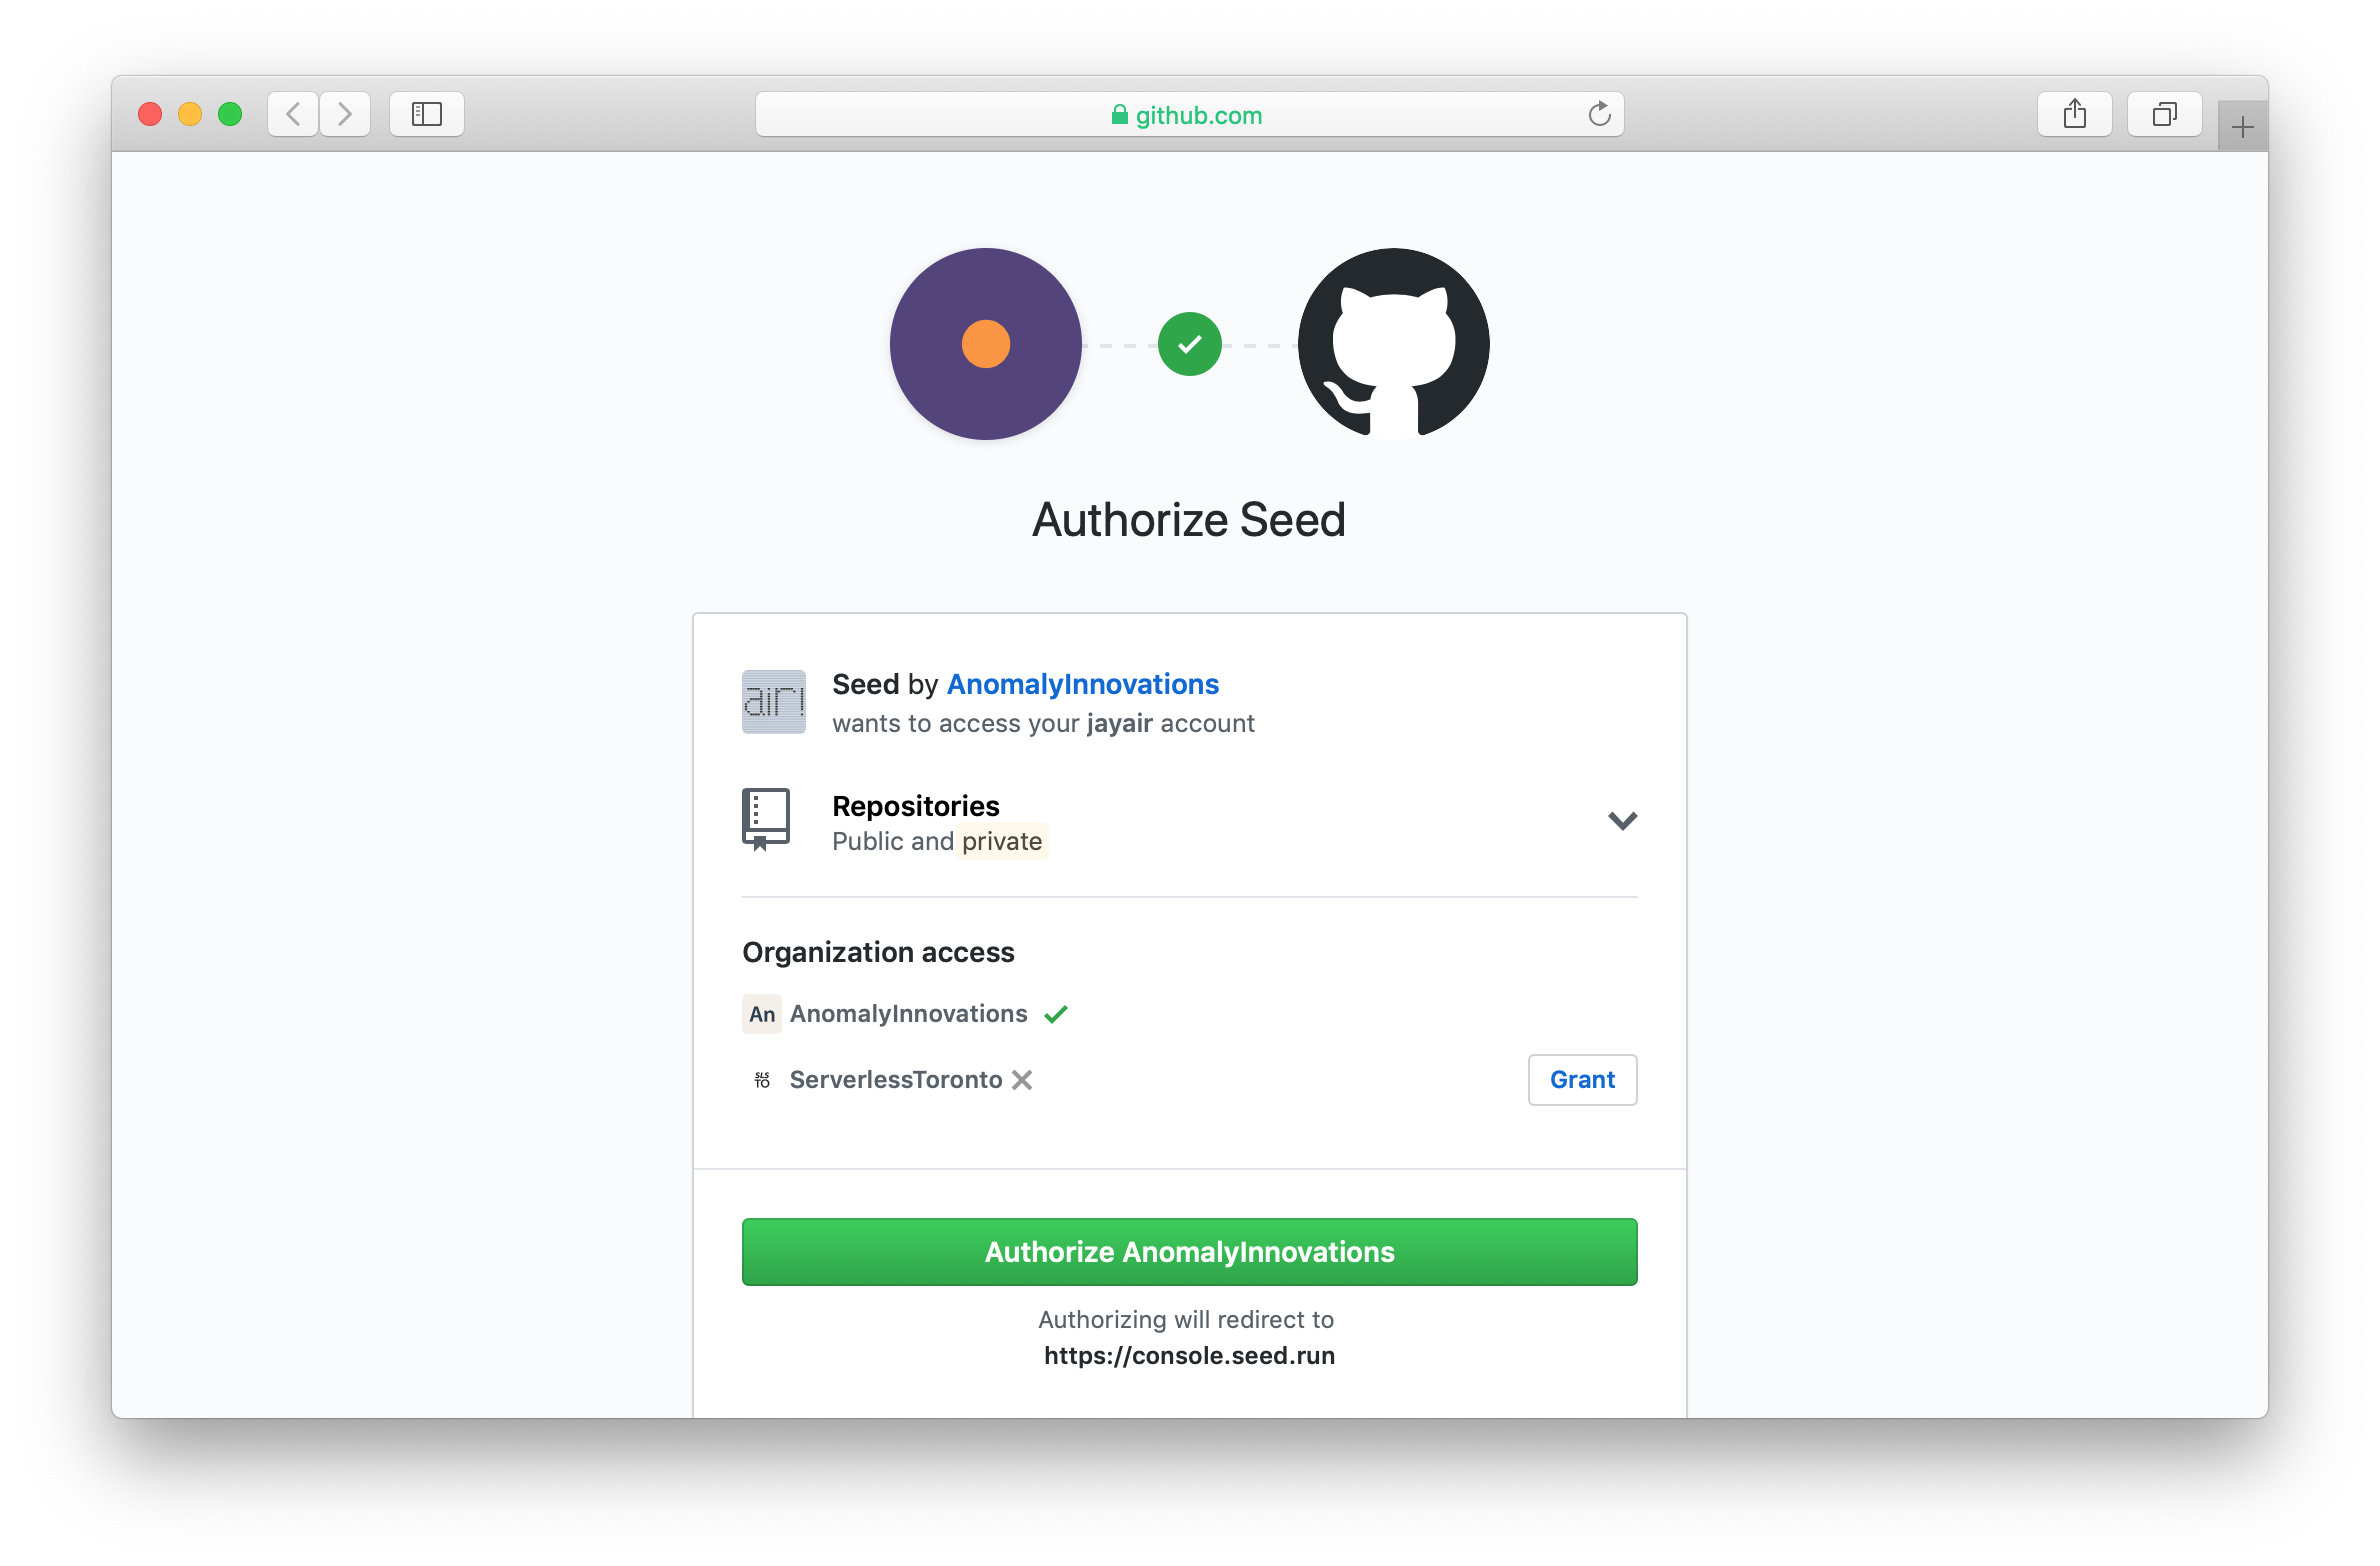 Getting Started with Seed